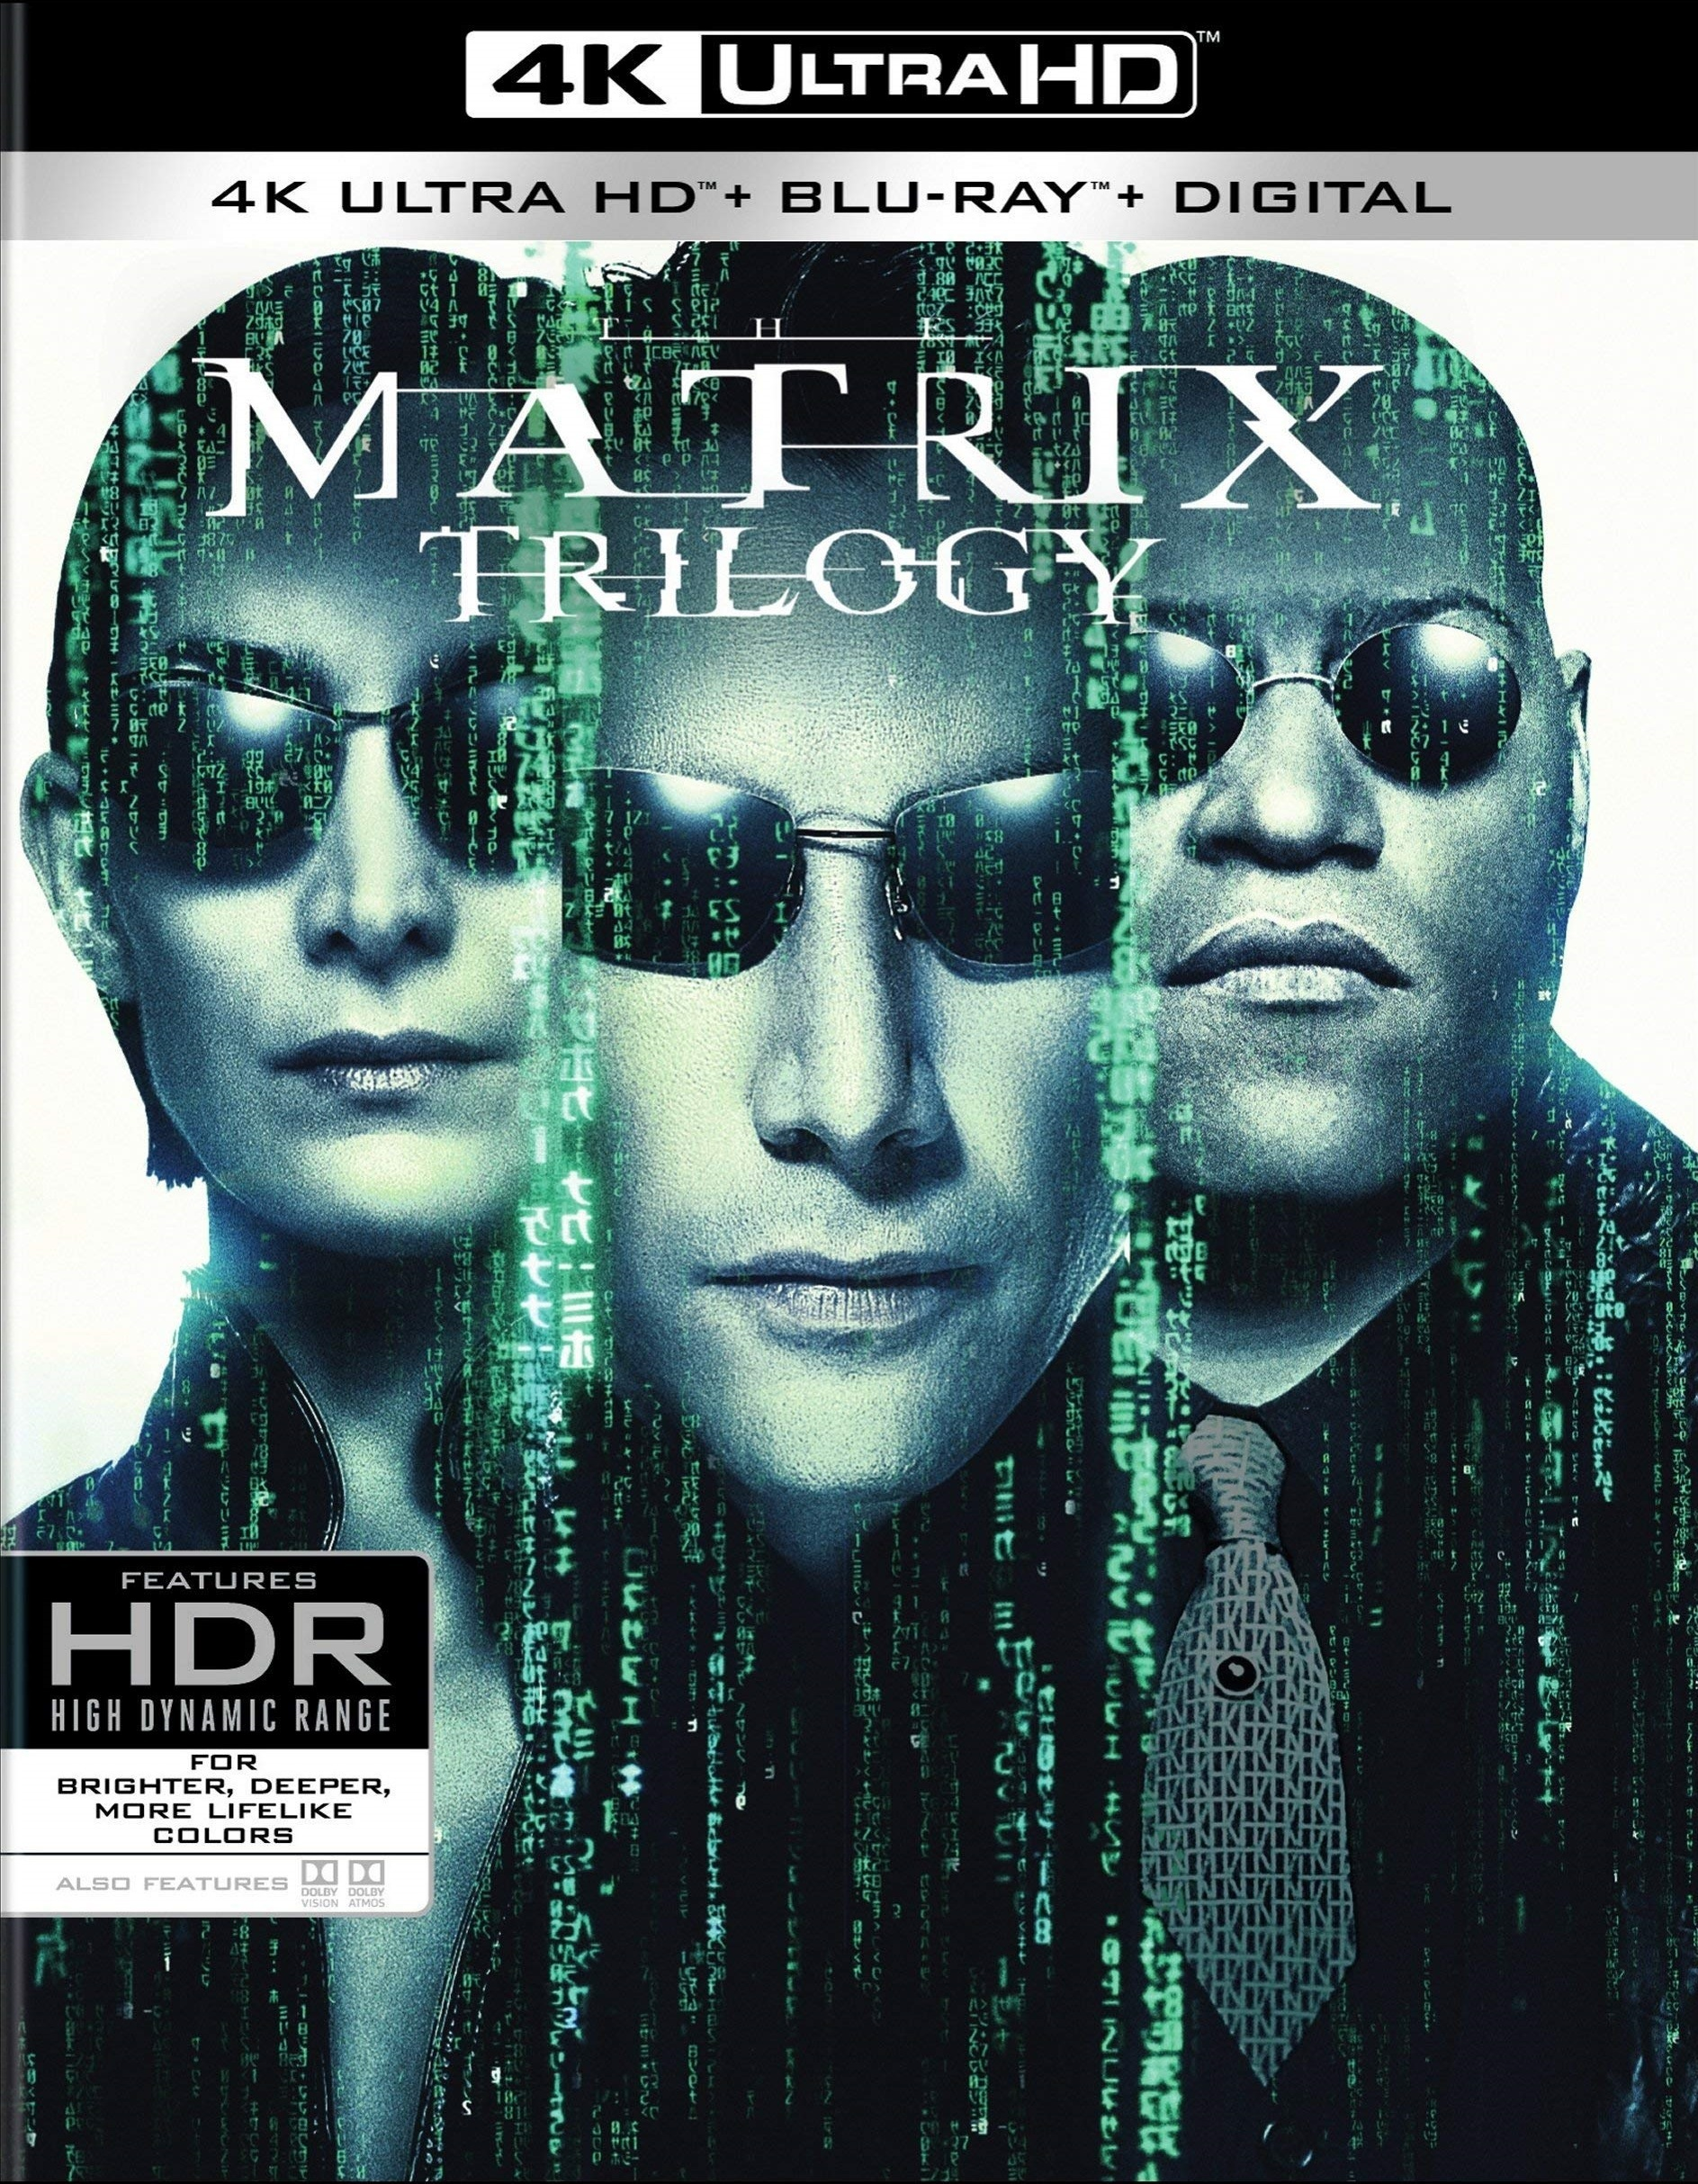 The Matrix Trilogy 4K (1999-2003) 4K Ultra HD Blu-ray